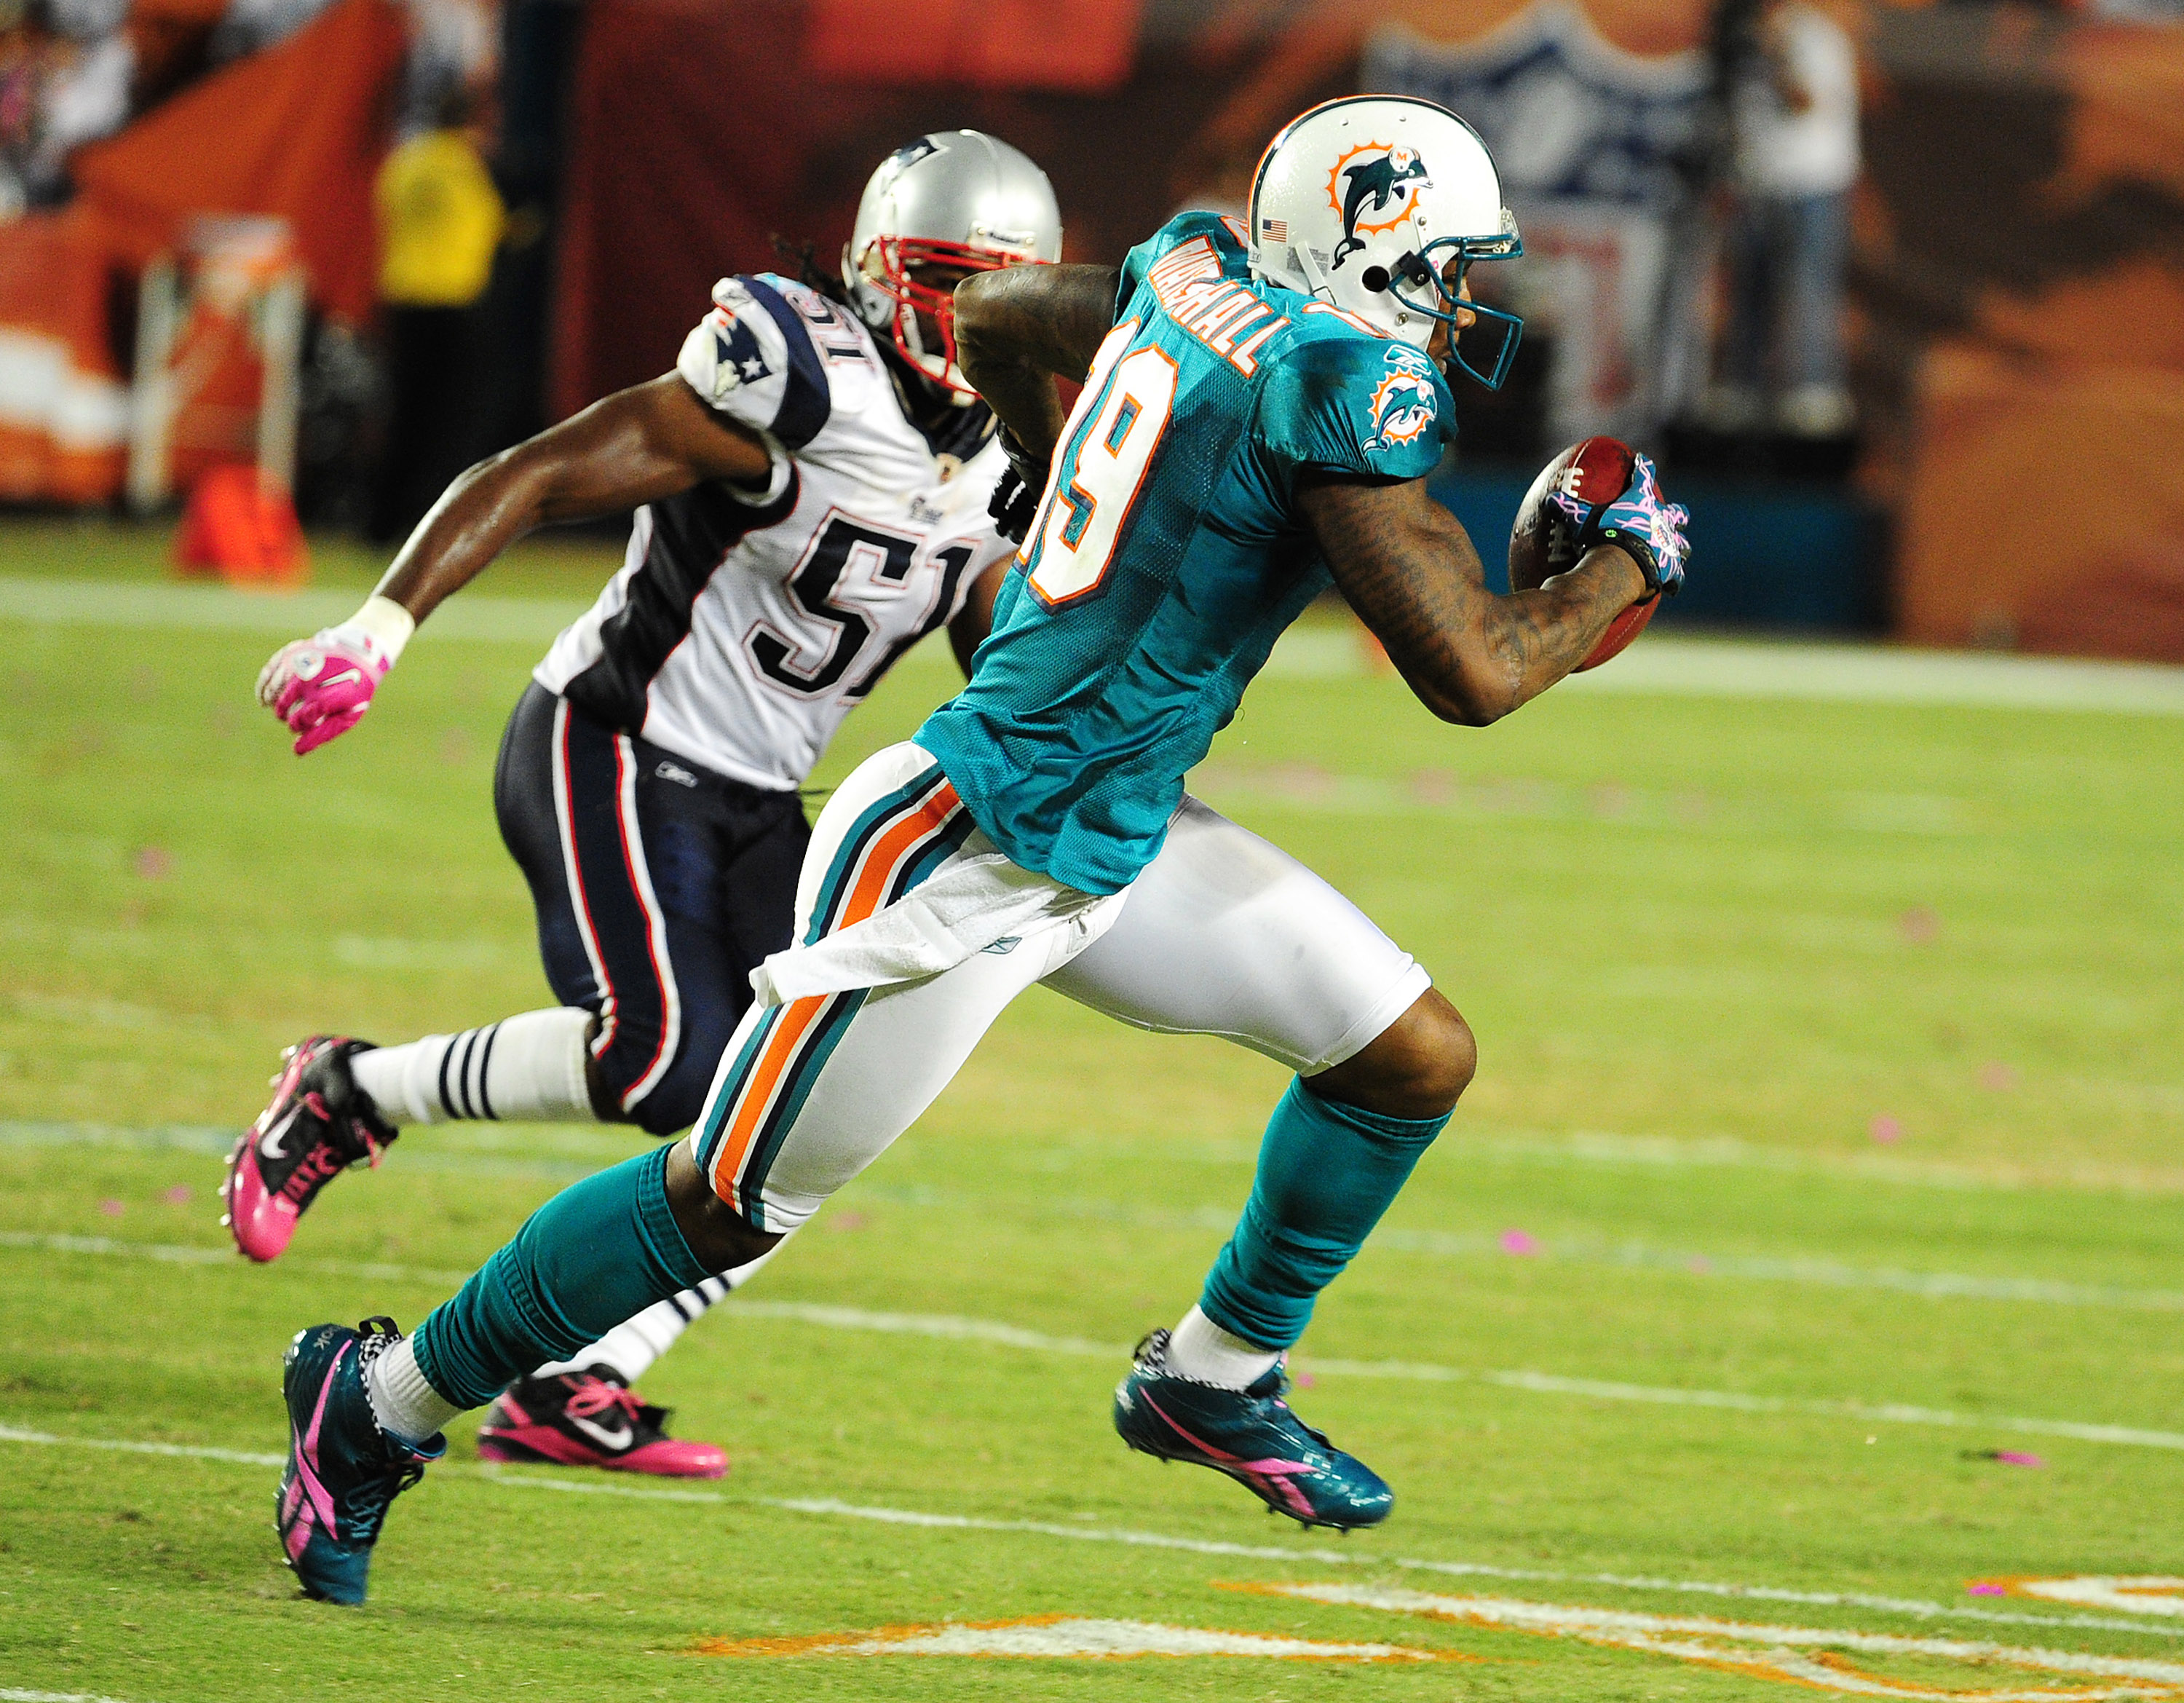 MIAMI - OCTOBER 4: Brandon Marshall #19 of the Miami Dolphins runs with a catch against the New England Patriots at Sun Life Field on October 4, 2010 in Miami, Florida. (Photo by Scott Cunningham/Getty Images)